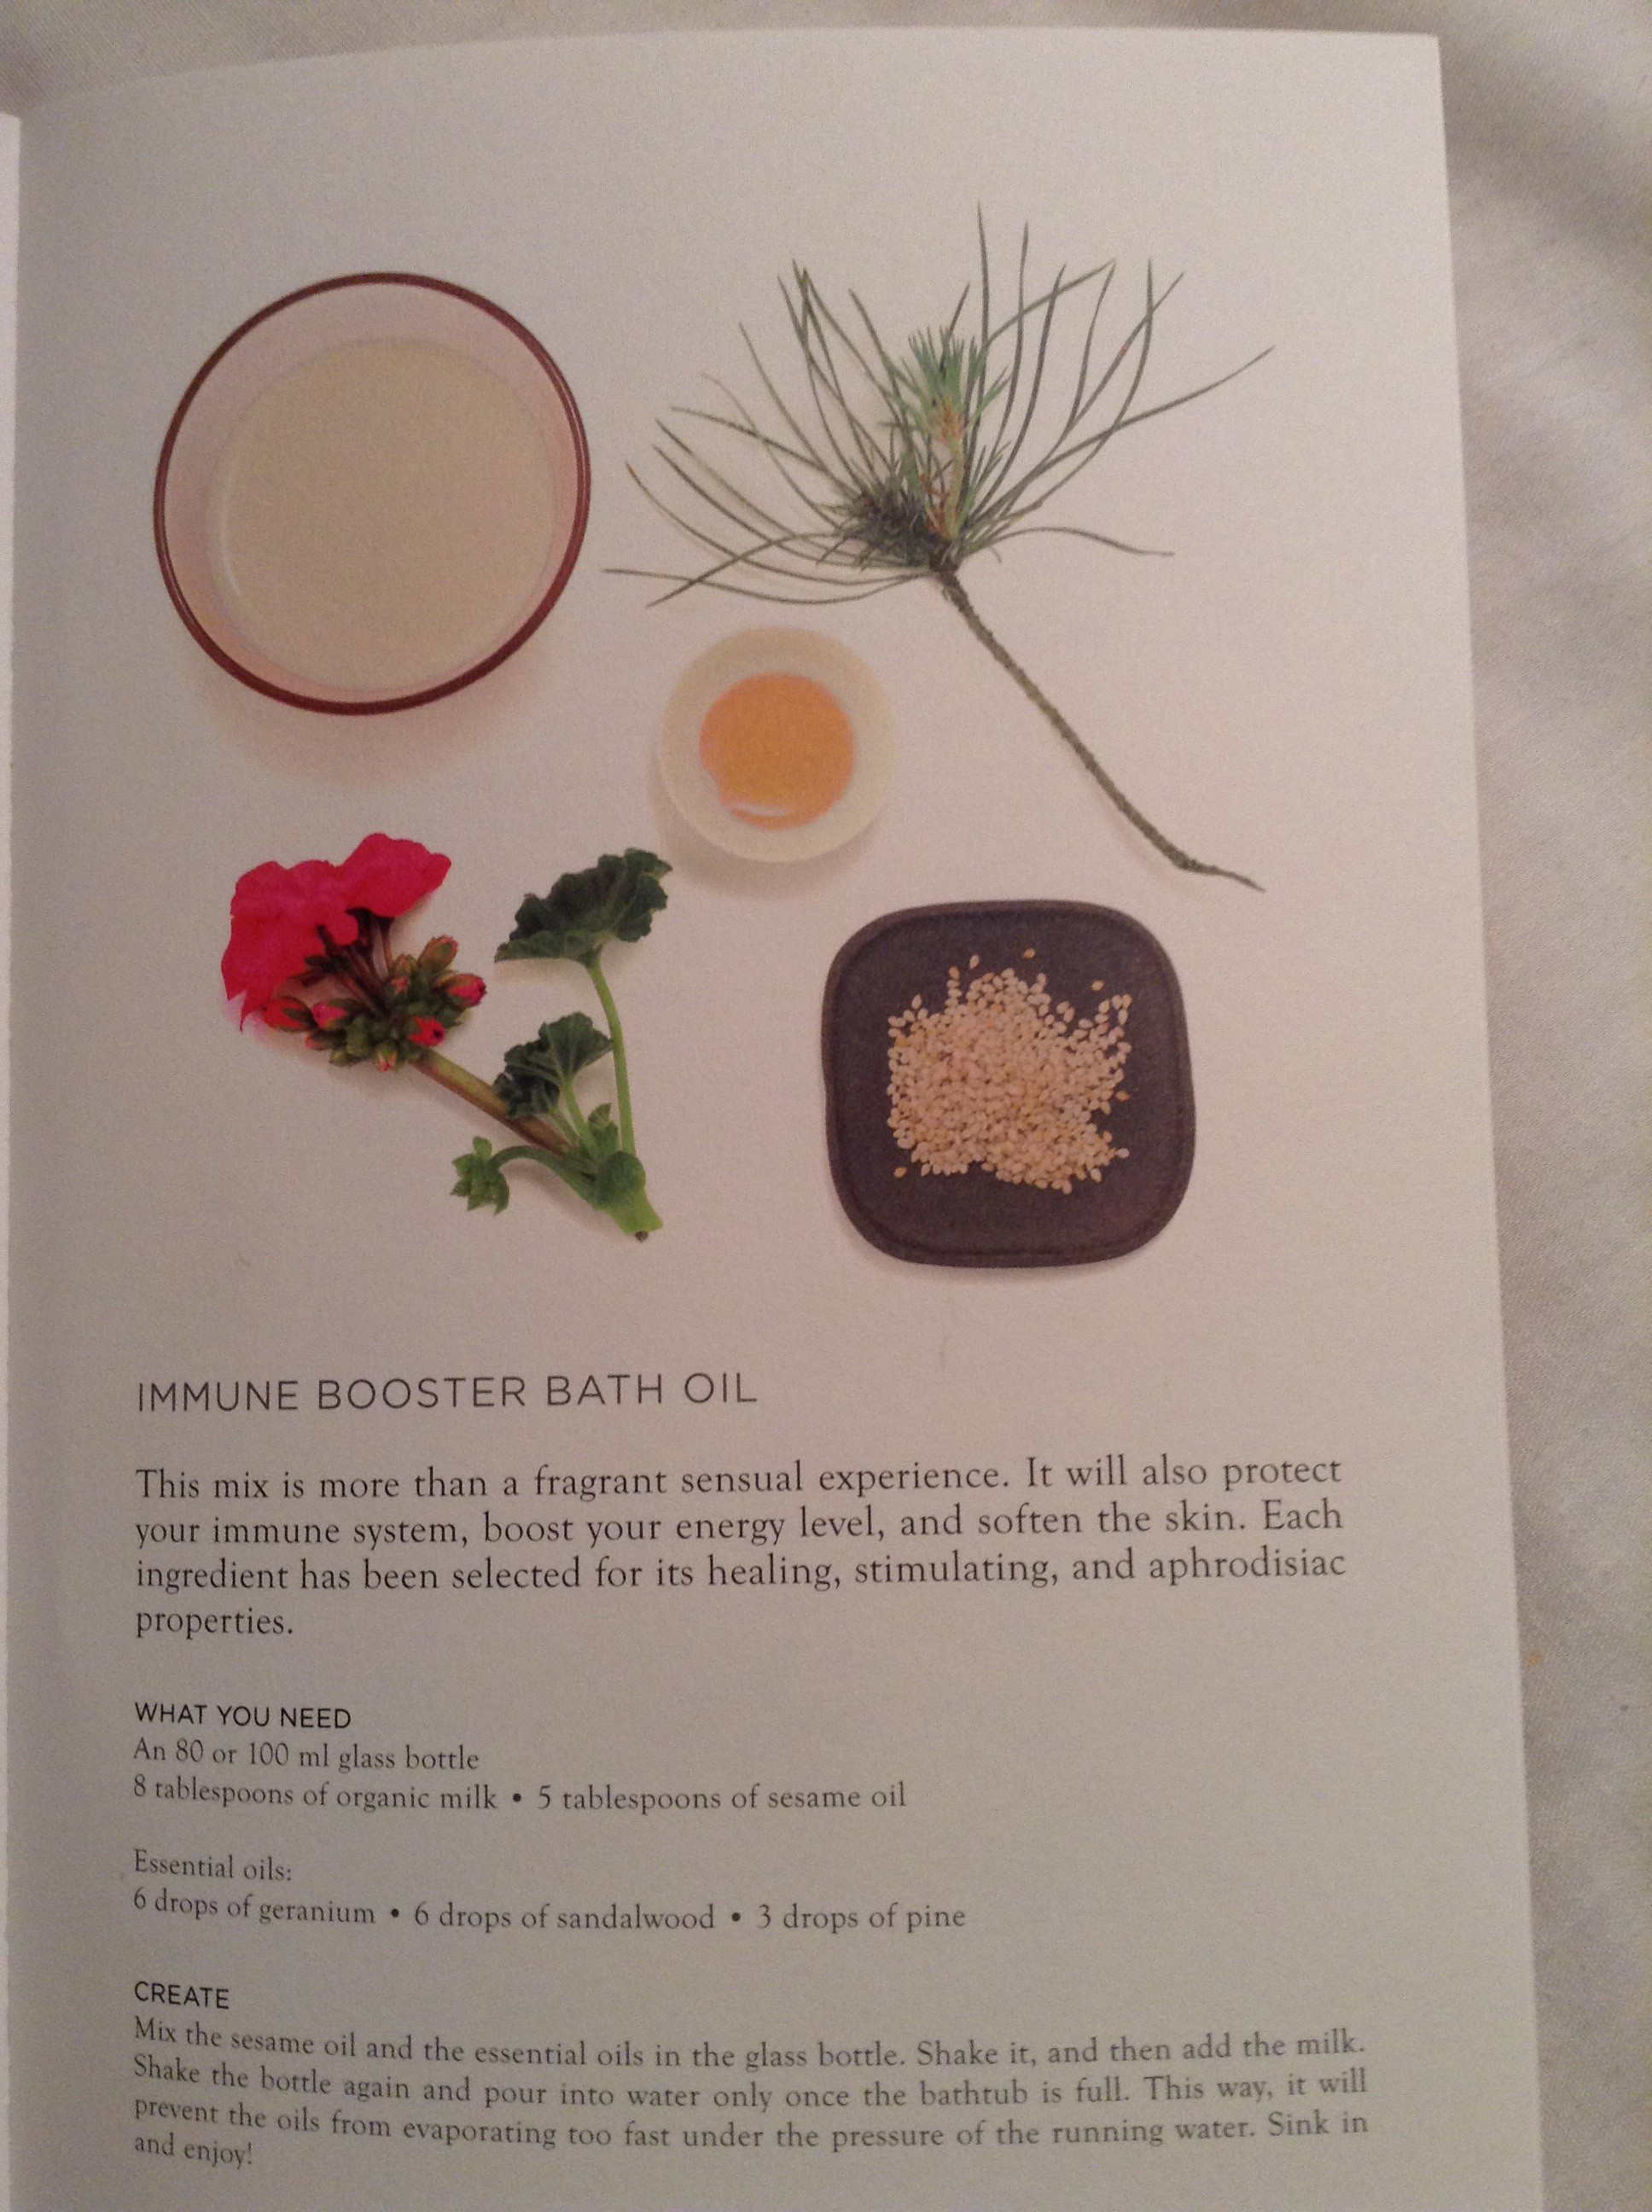 IMMUNE BOOSTER BATH OIL